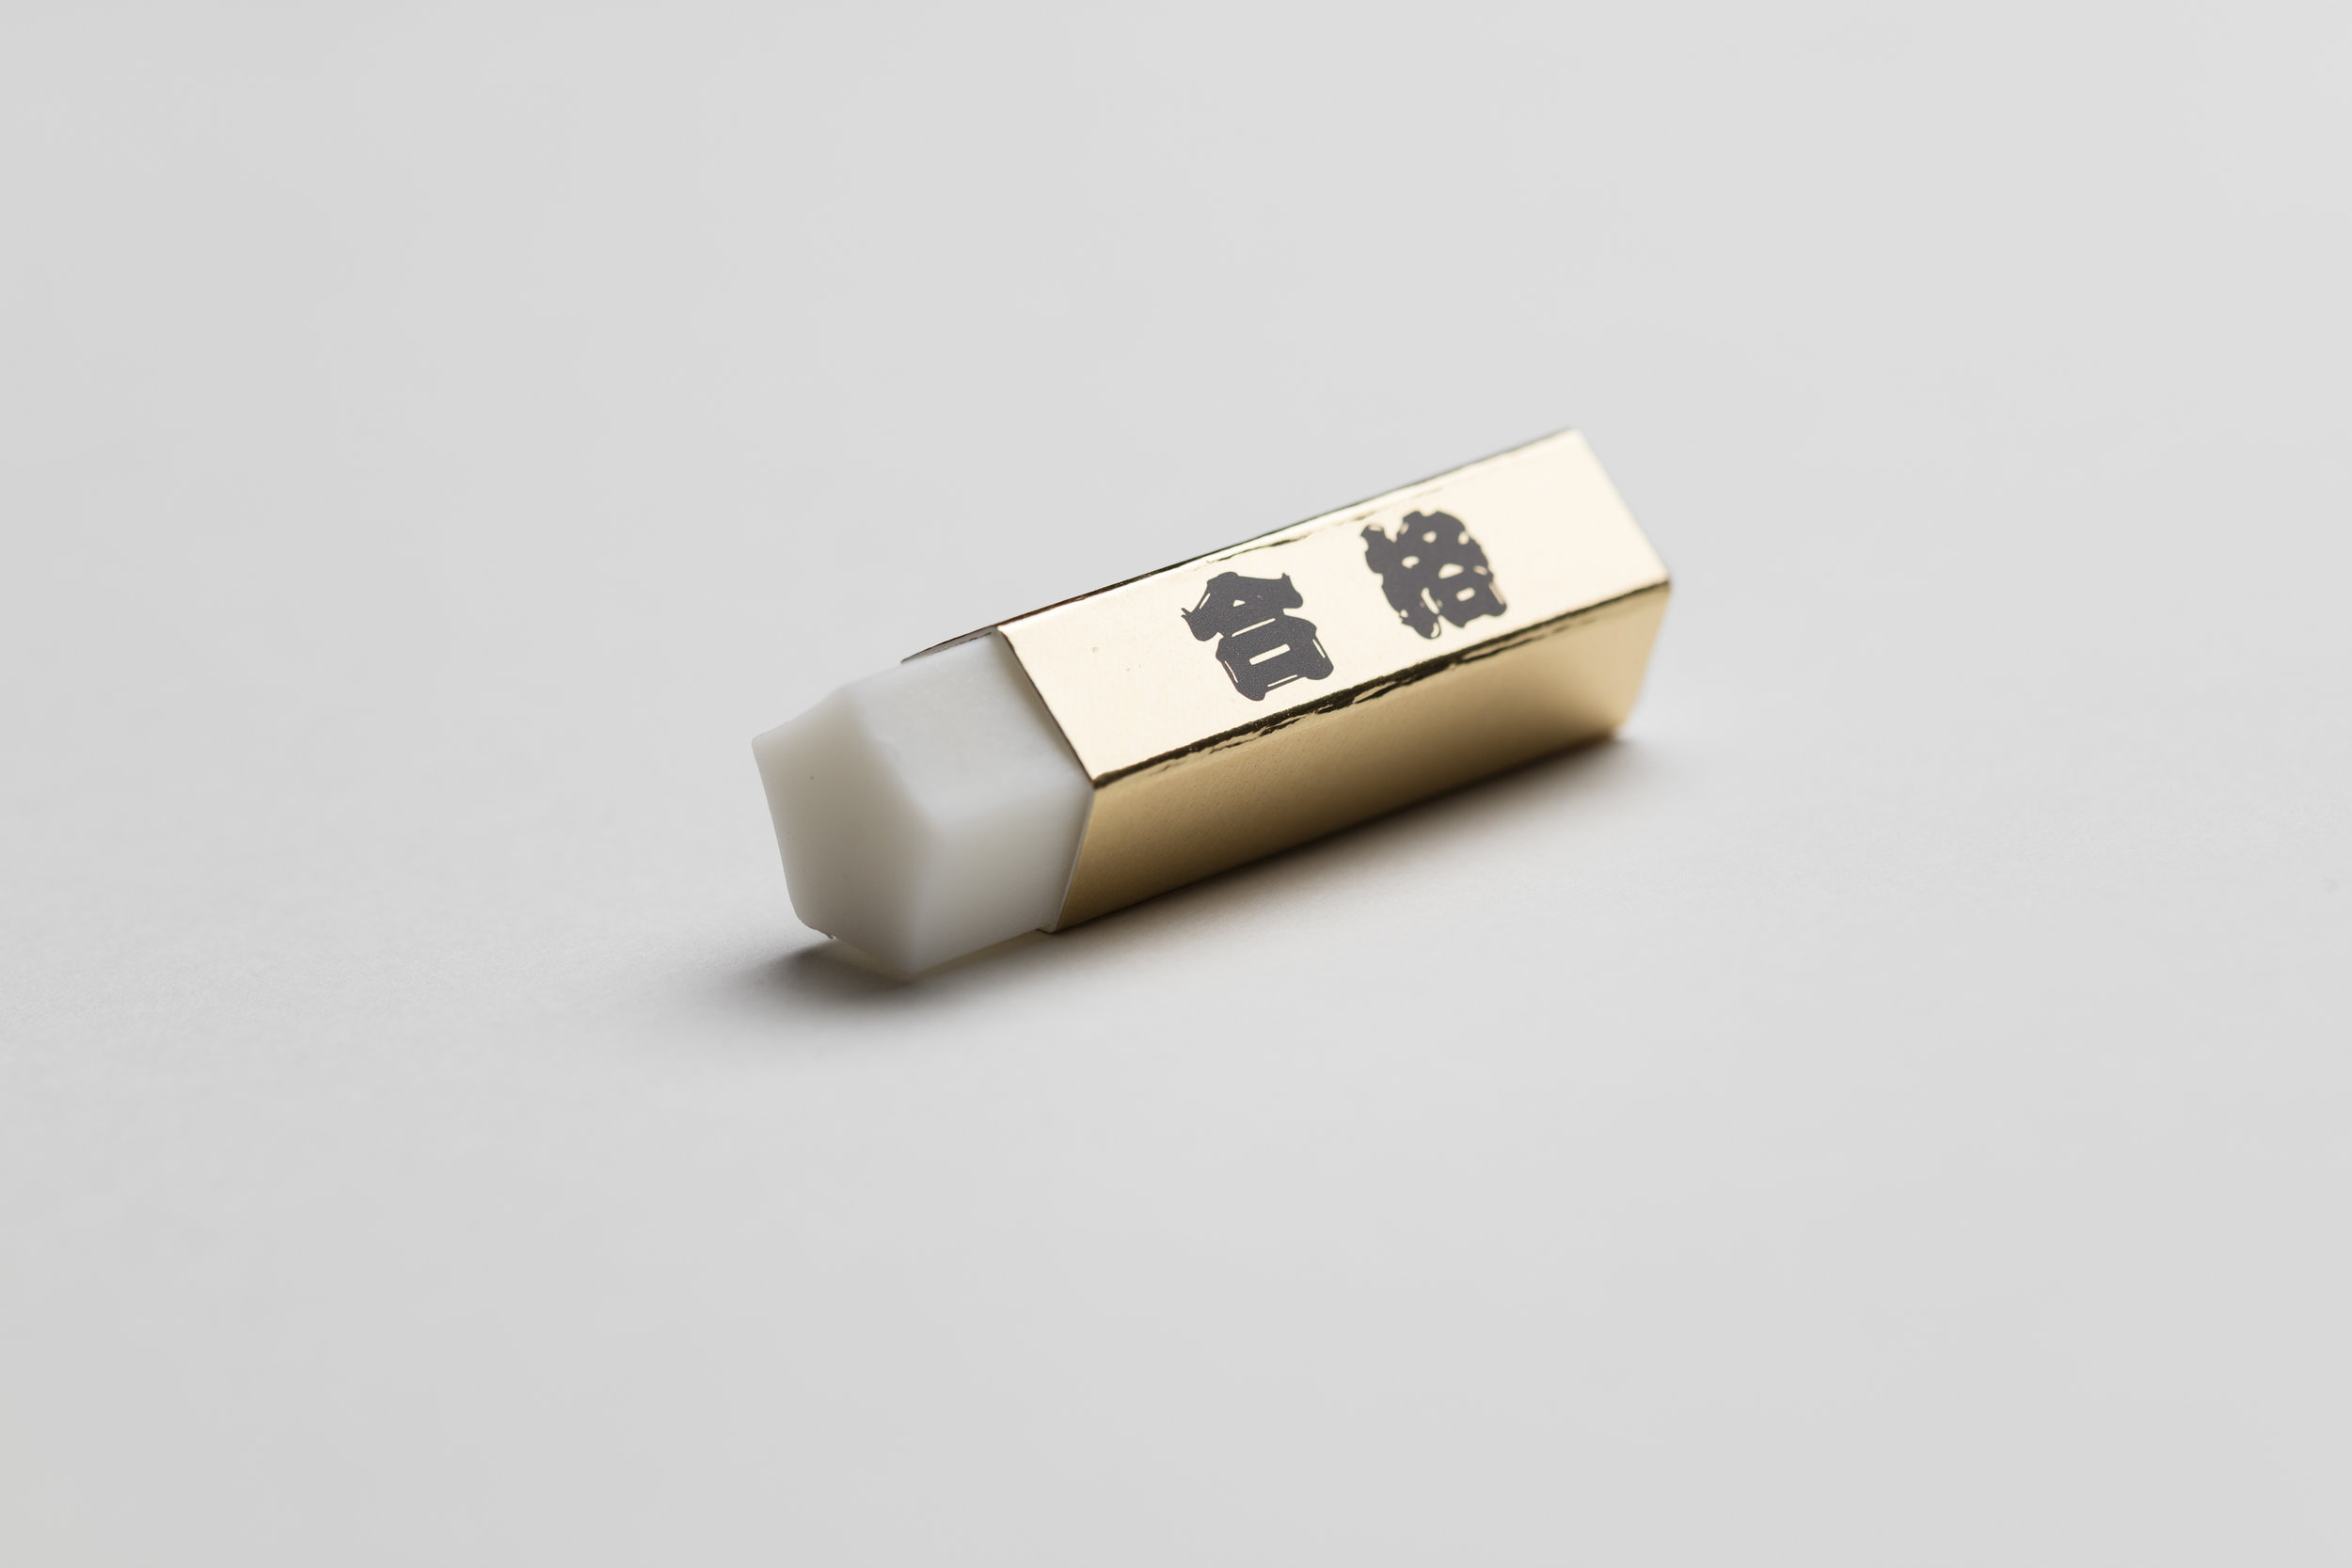 Lux-looking gold-wrapped eraser